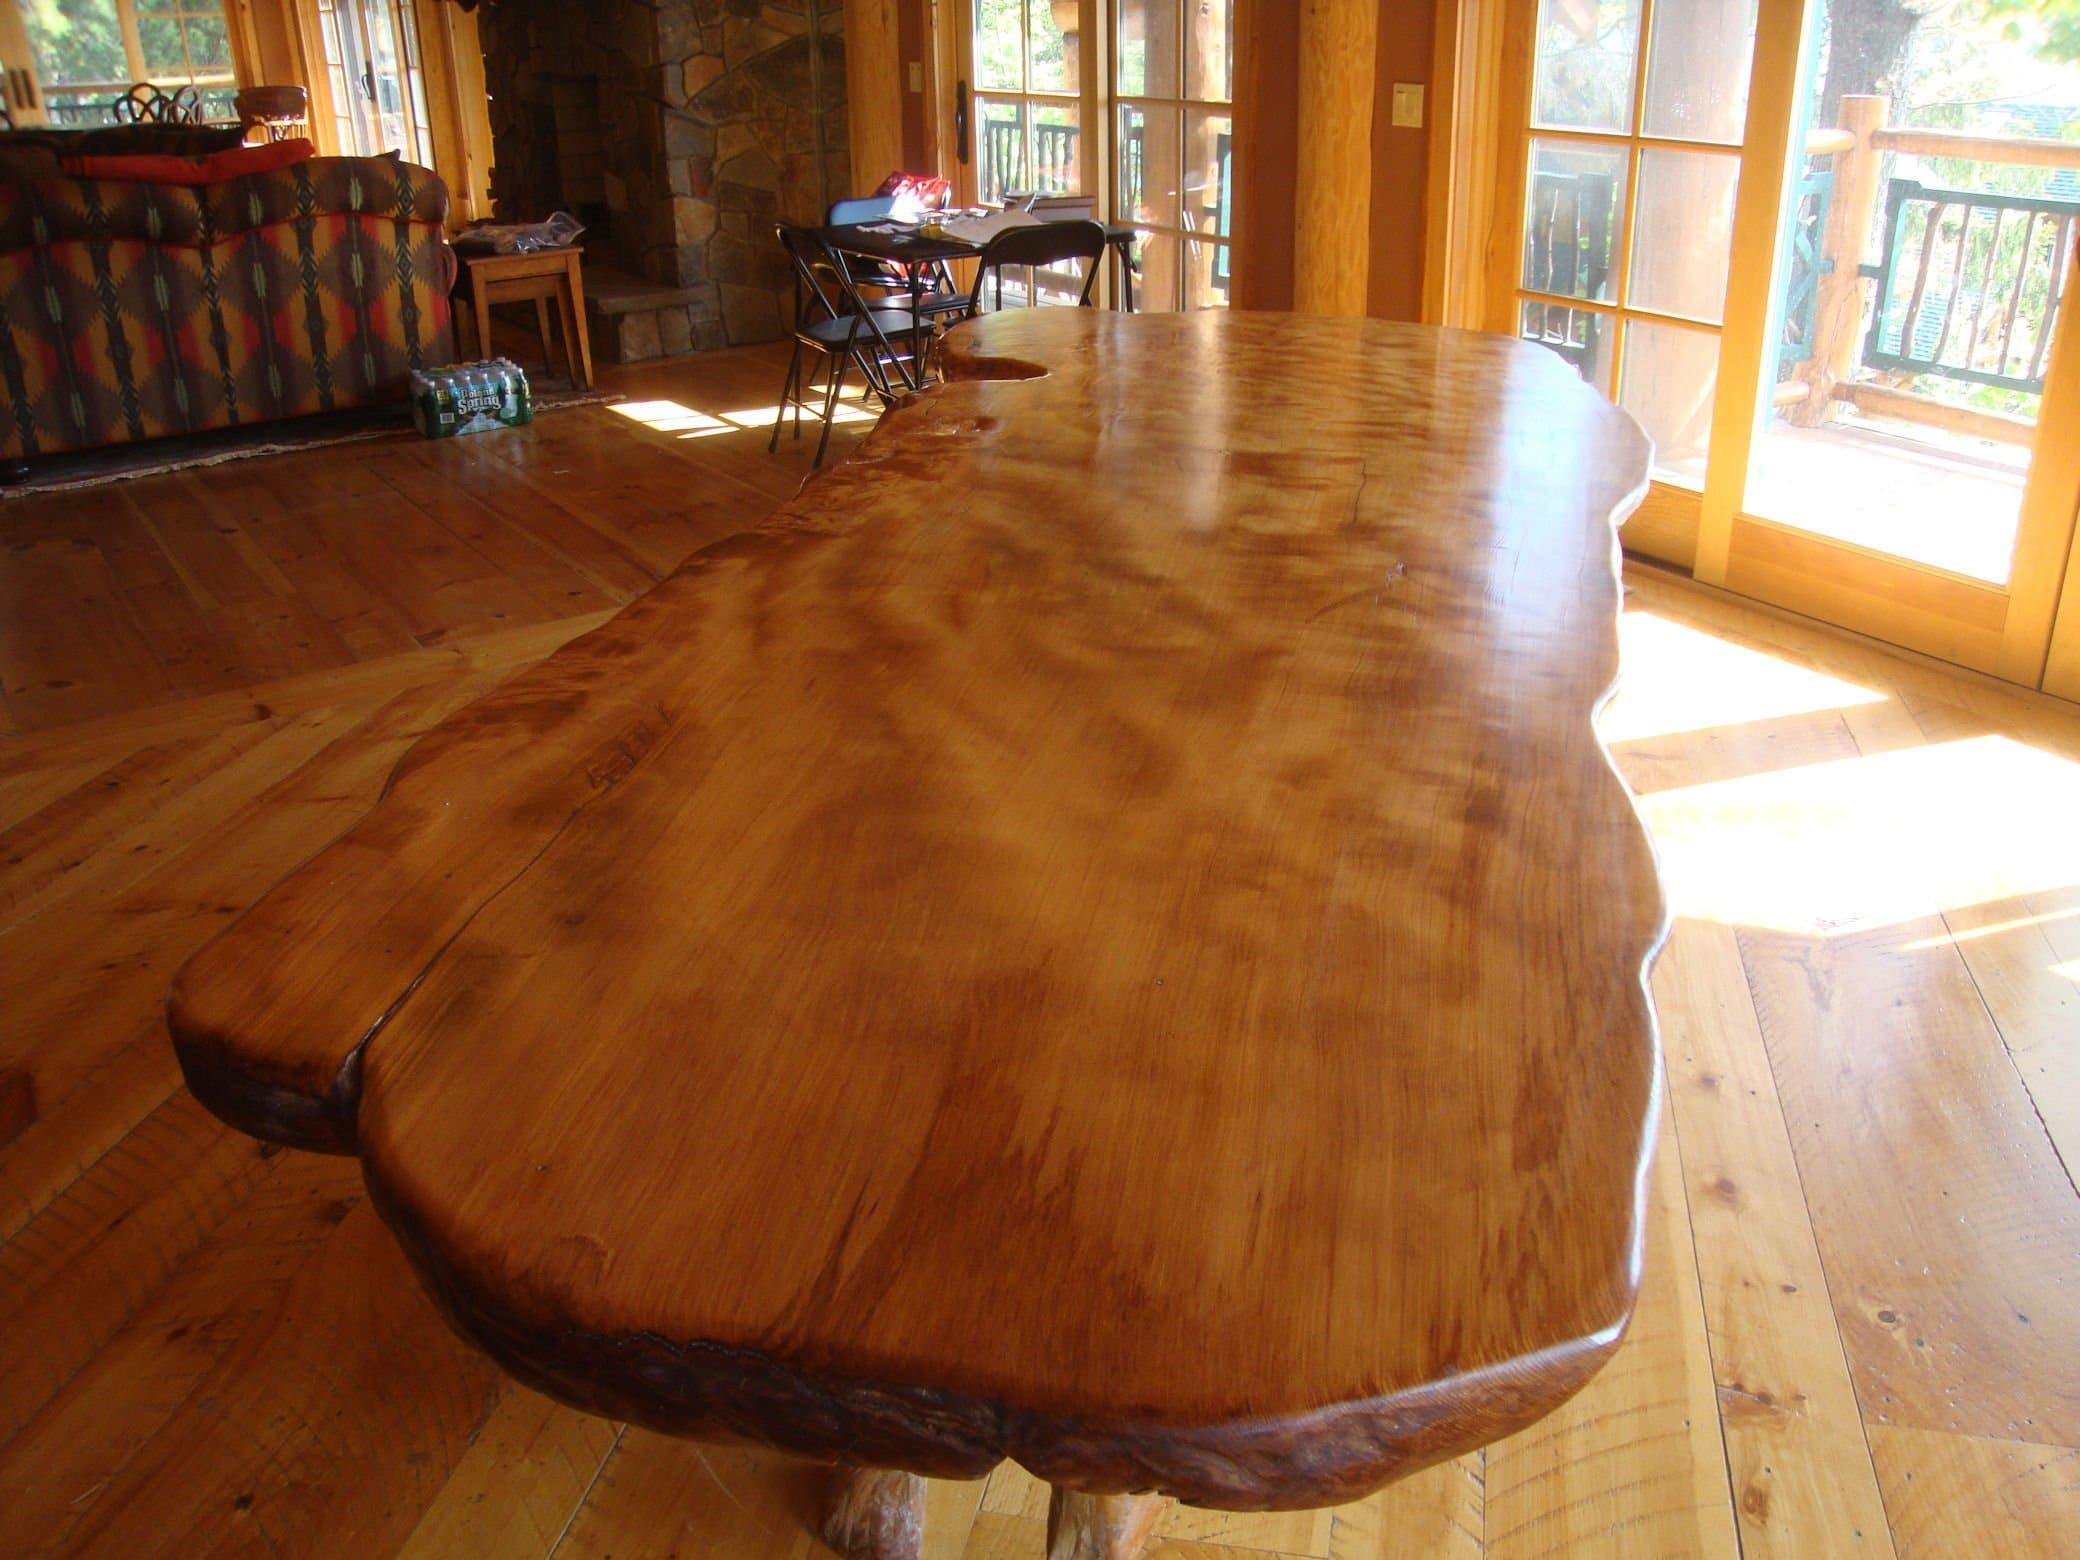 Western red cedar table top western red cedar live edge table top - Live Edge Wood Table